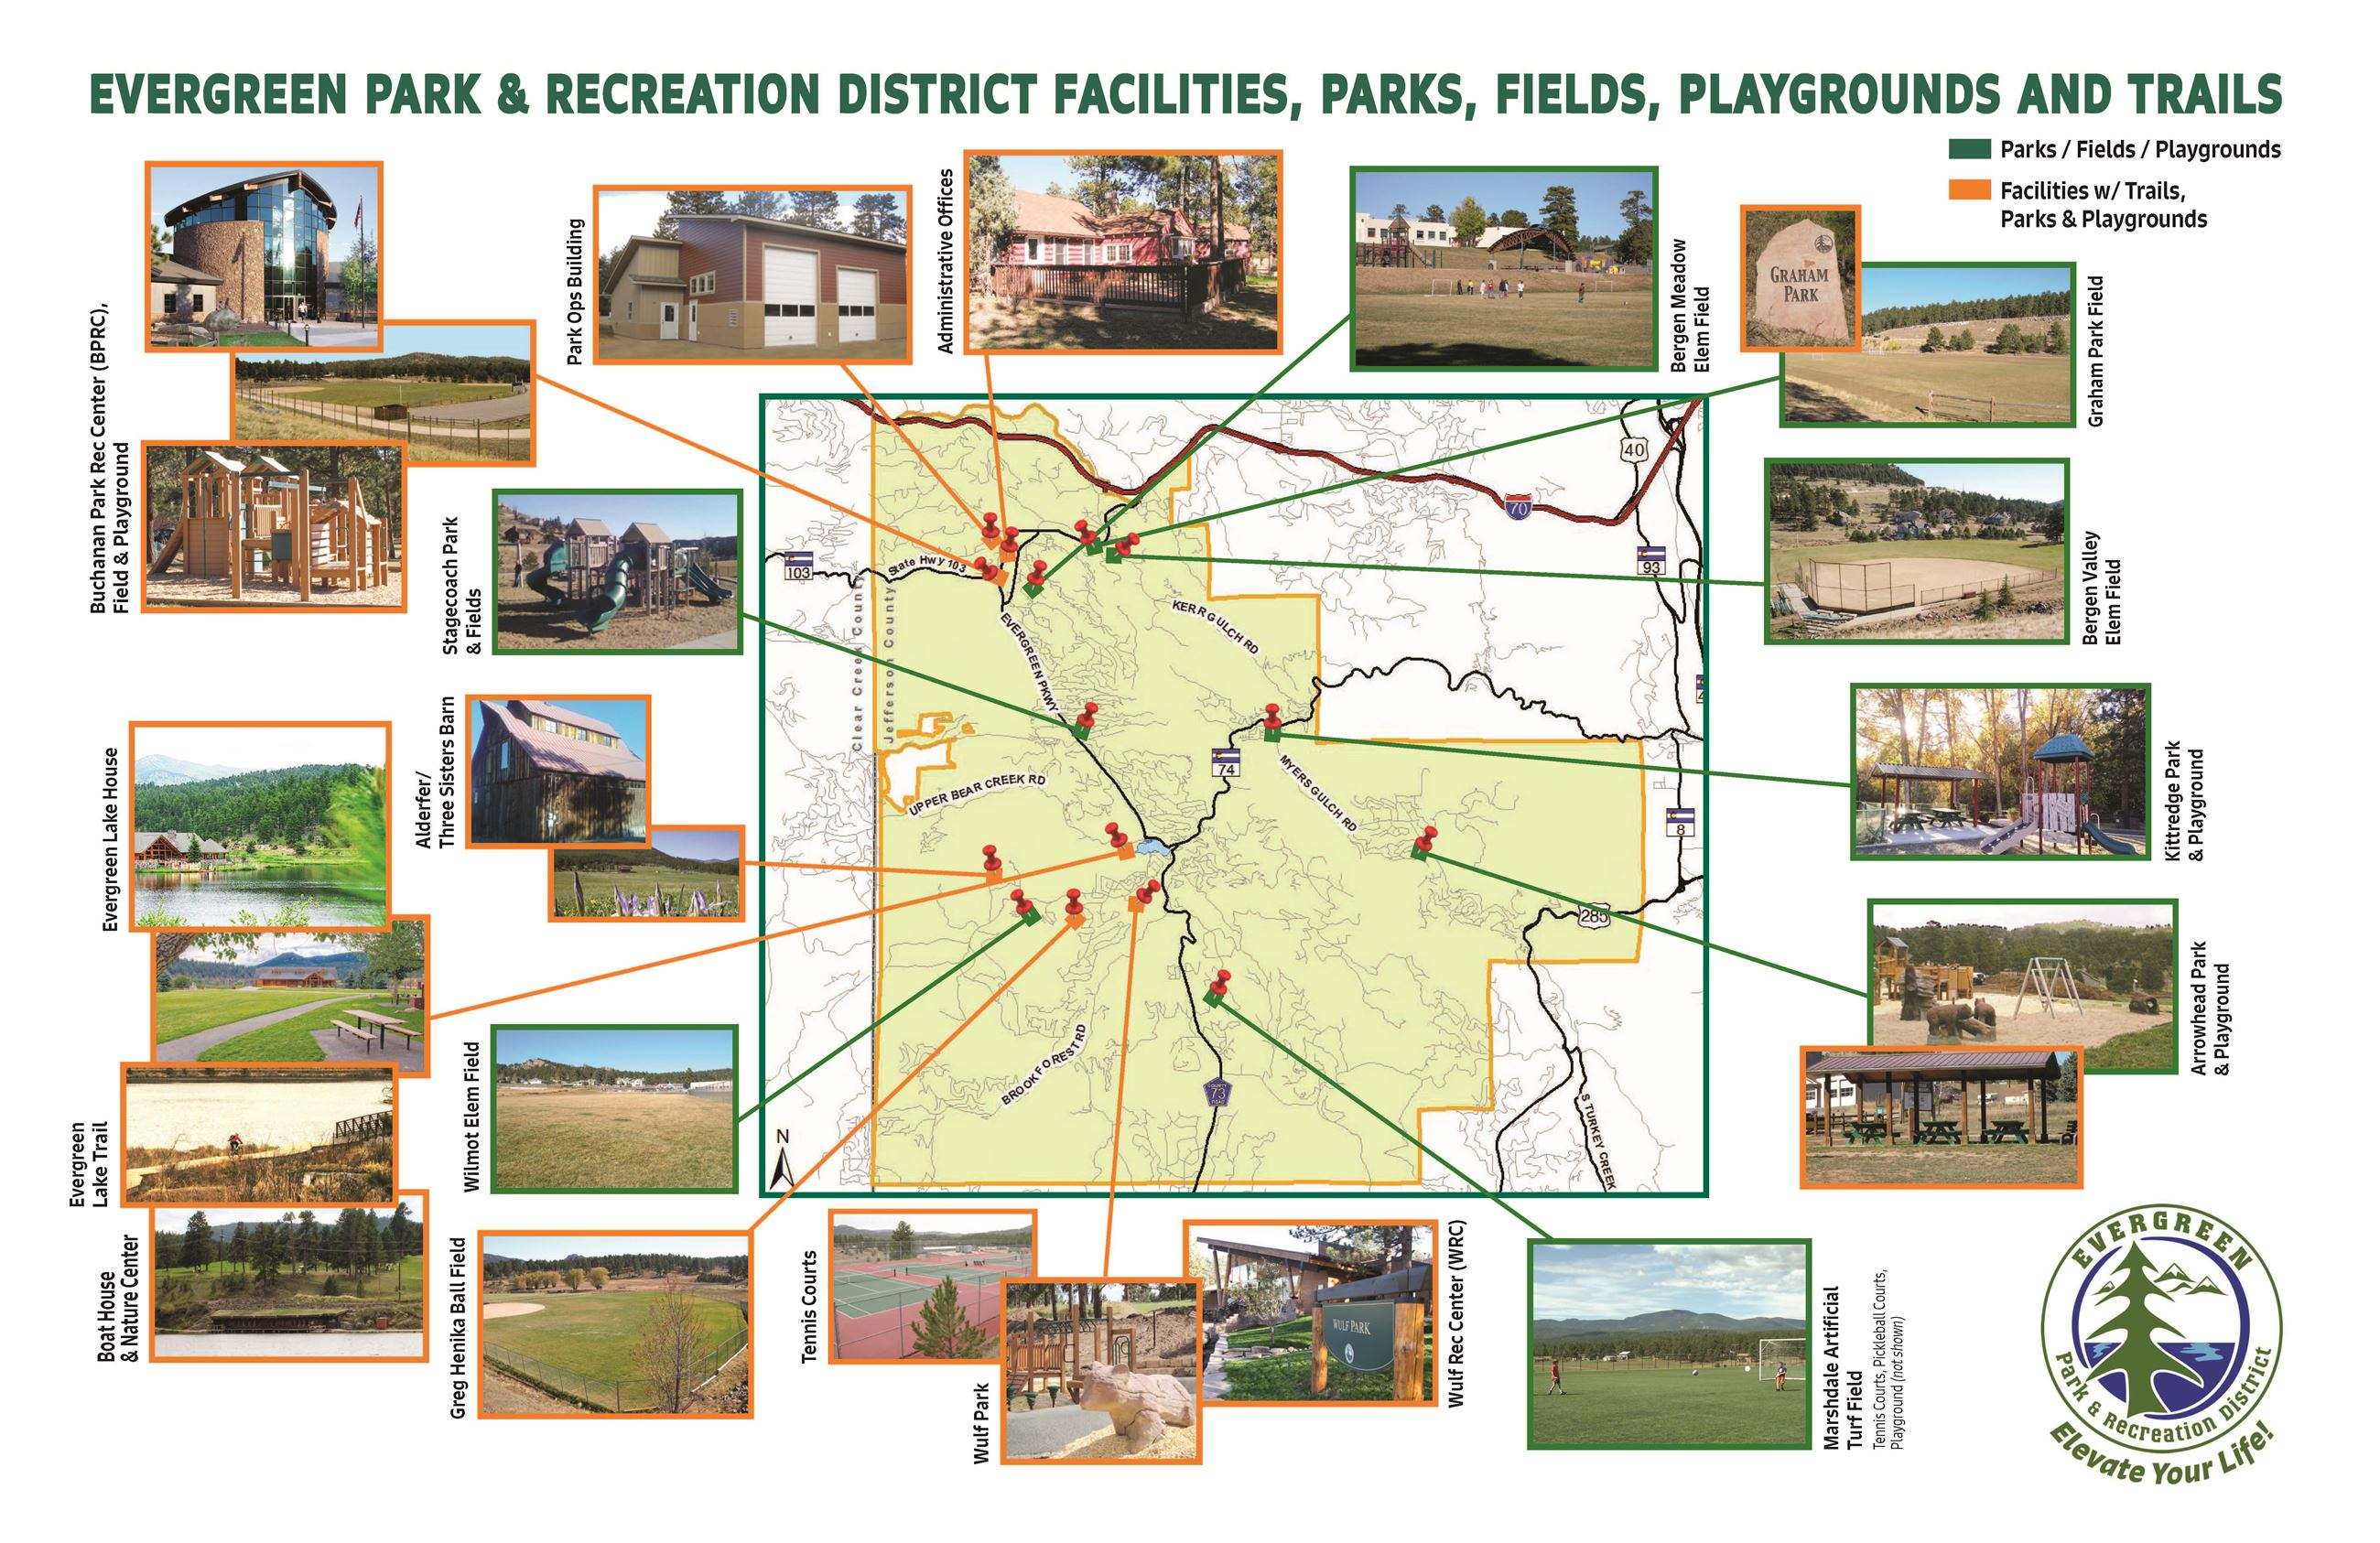 Evergreen Park & Recreation District Facilities, Parks, Fields, Playgrounds and Trails